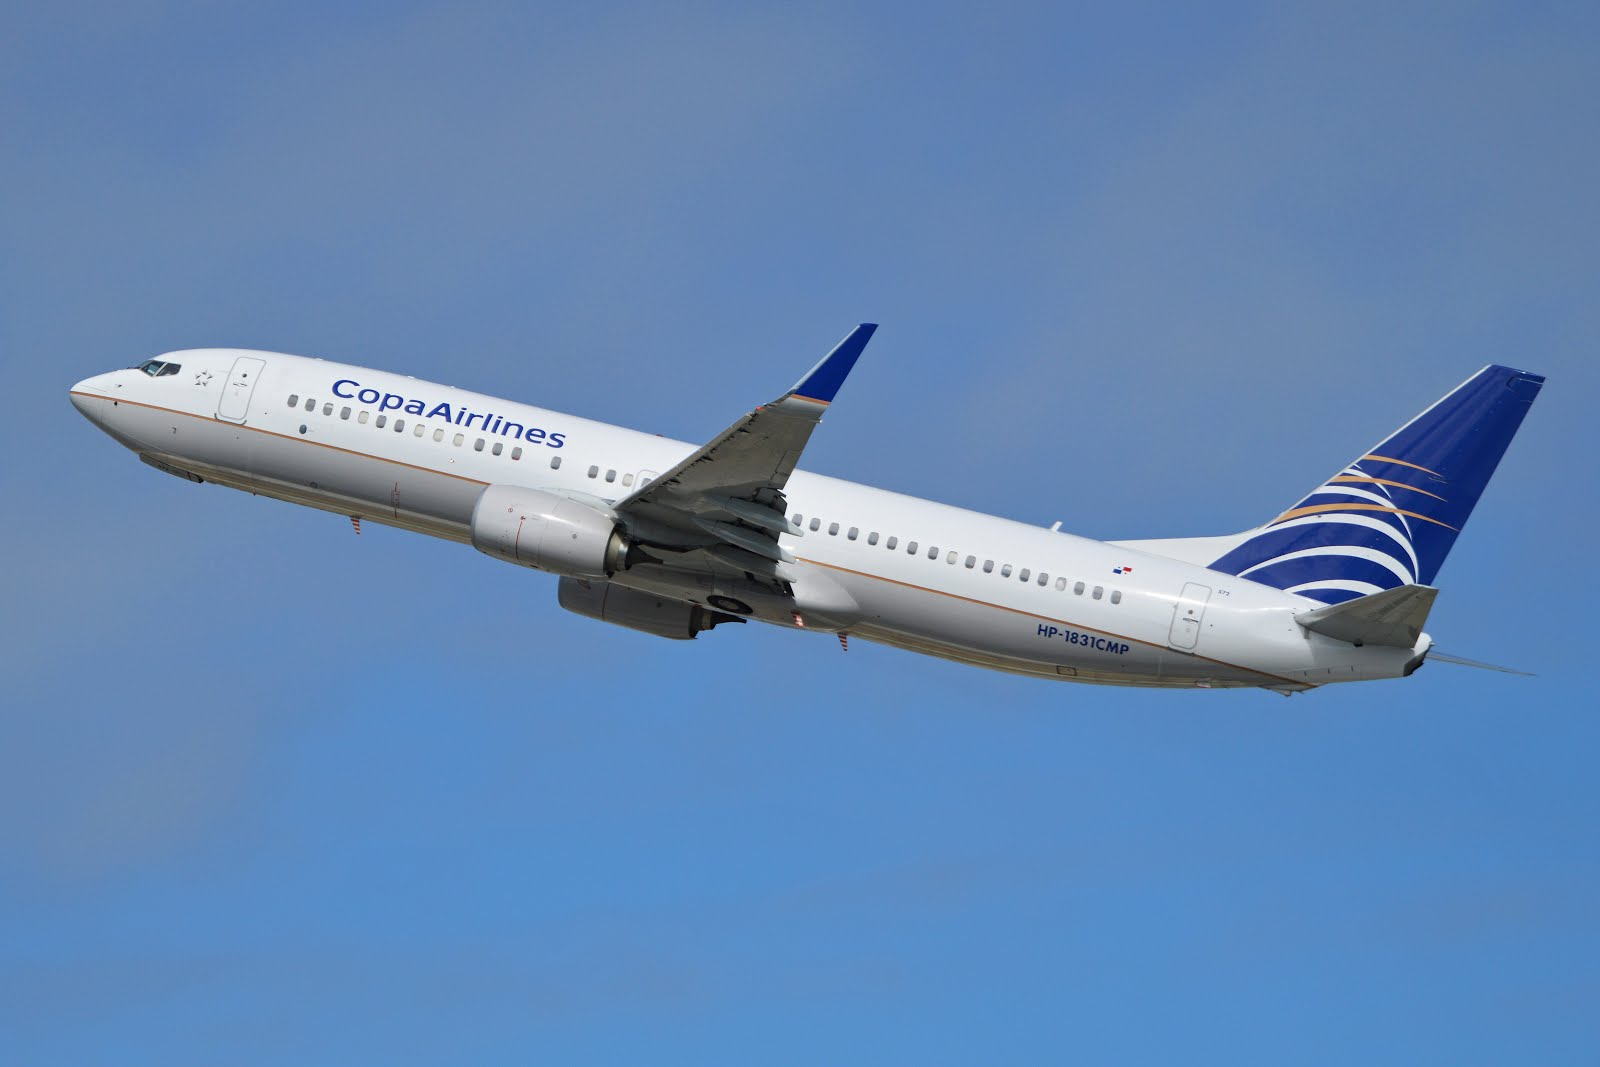 Trips In South America Delayed Damaged Or Lost Baggage At Copa Airlines